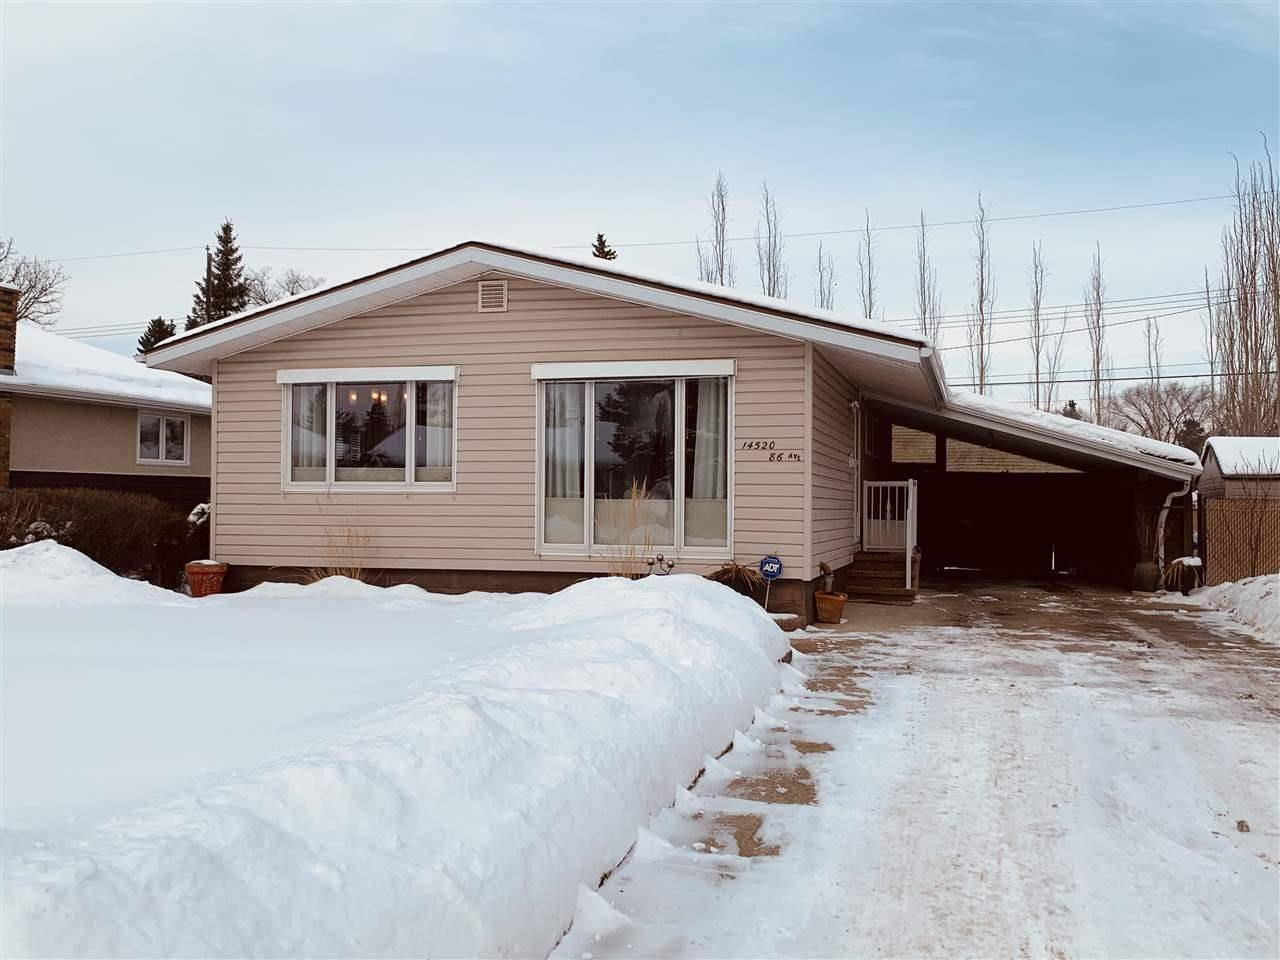 House for sale at 14520 86 Ave Nw Edmonton Alberta - MLS: E4185536